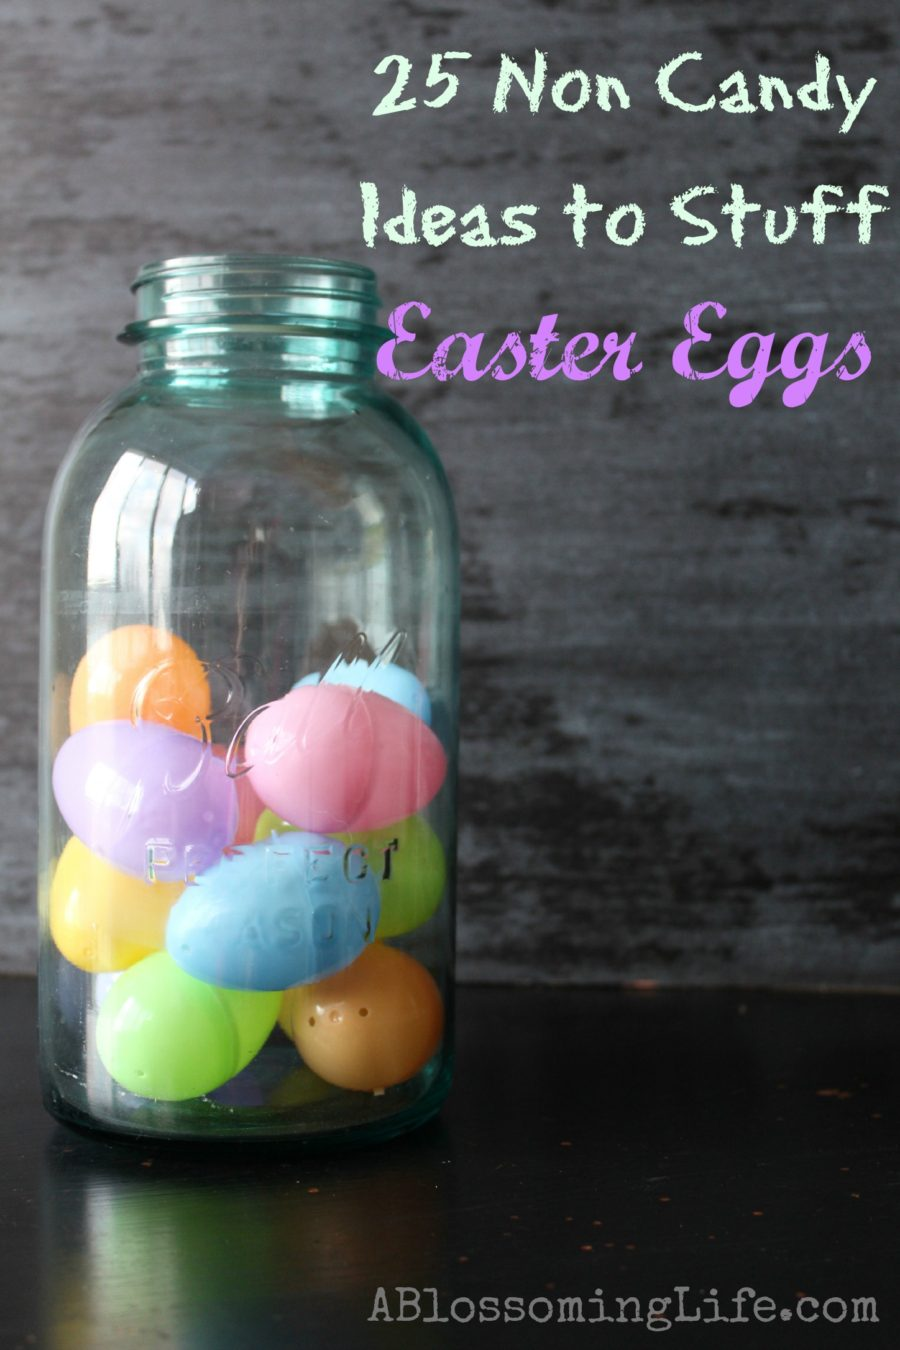 25 non candy ideas to stuff easter eggs